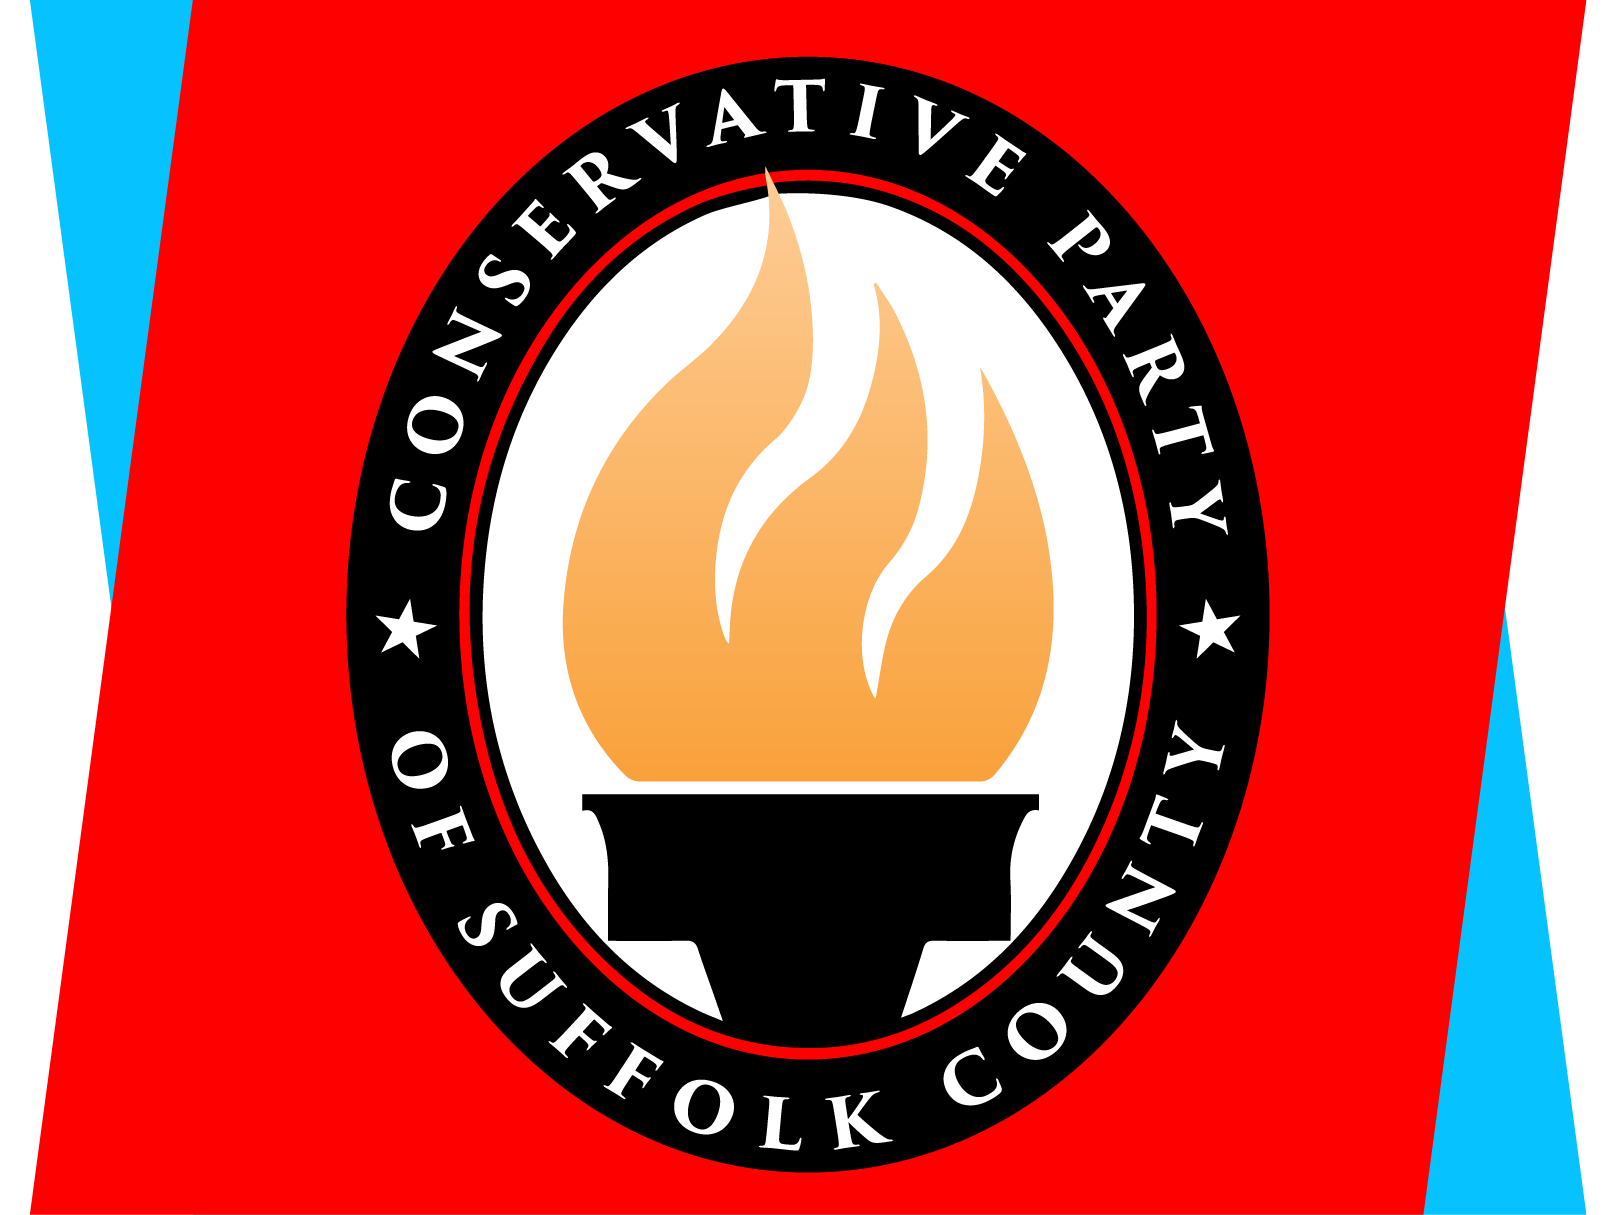 The Suffolk County Conservative Party About Us